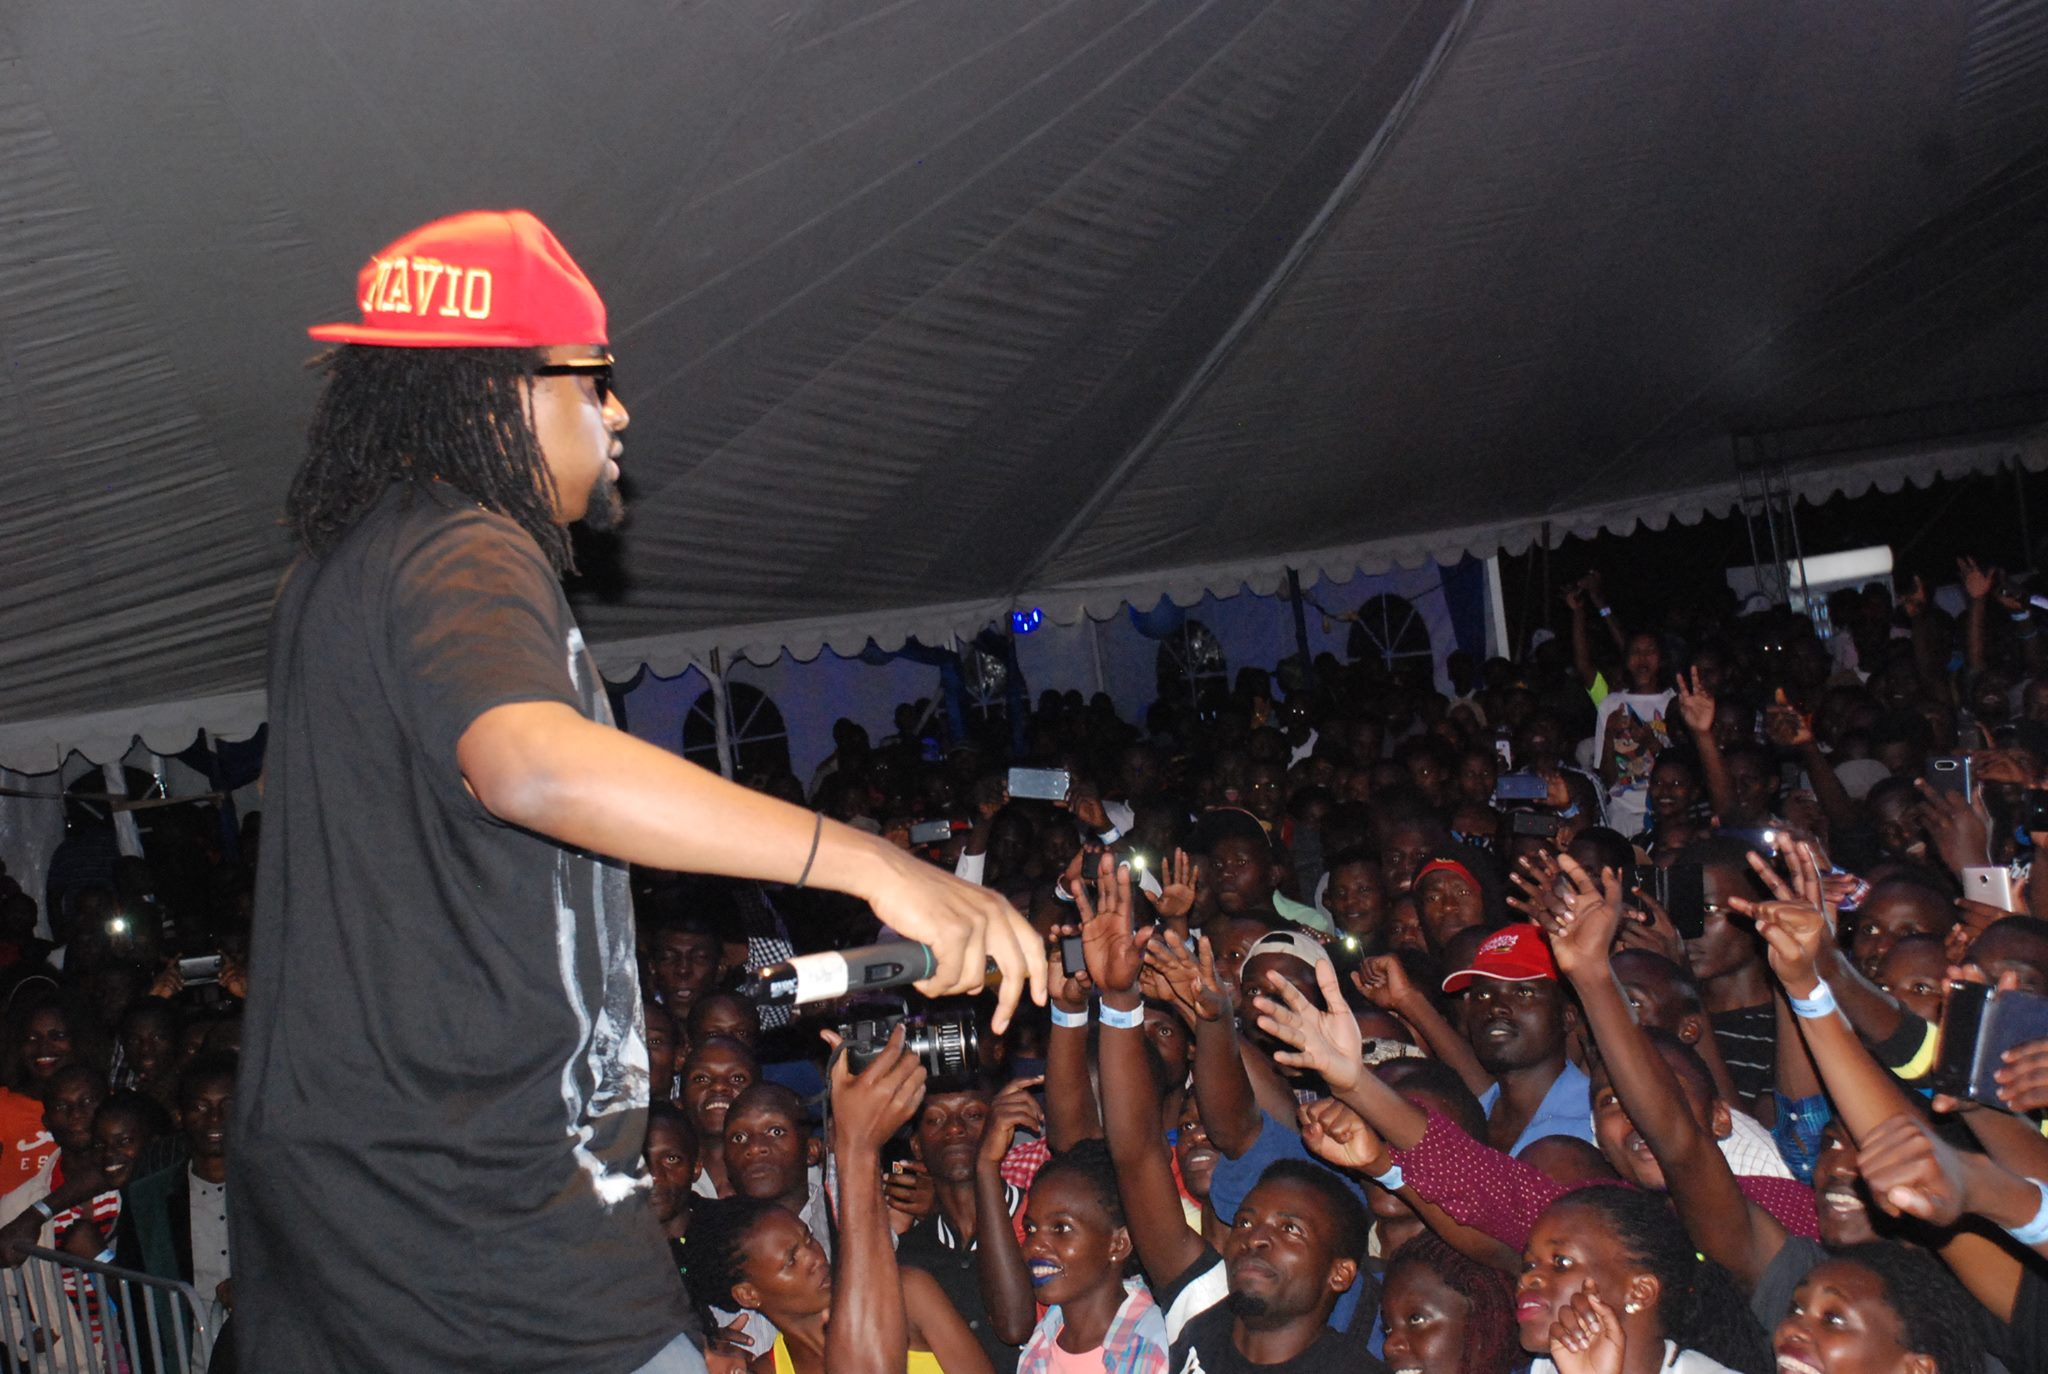 Navio still got it...